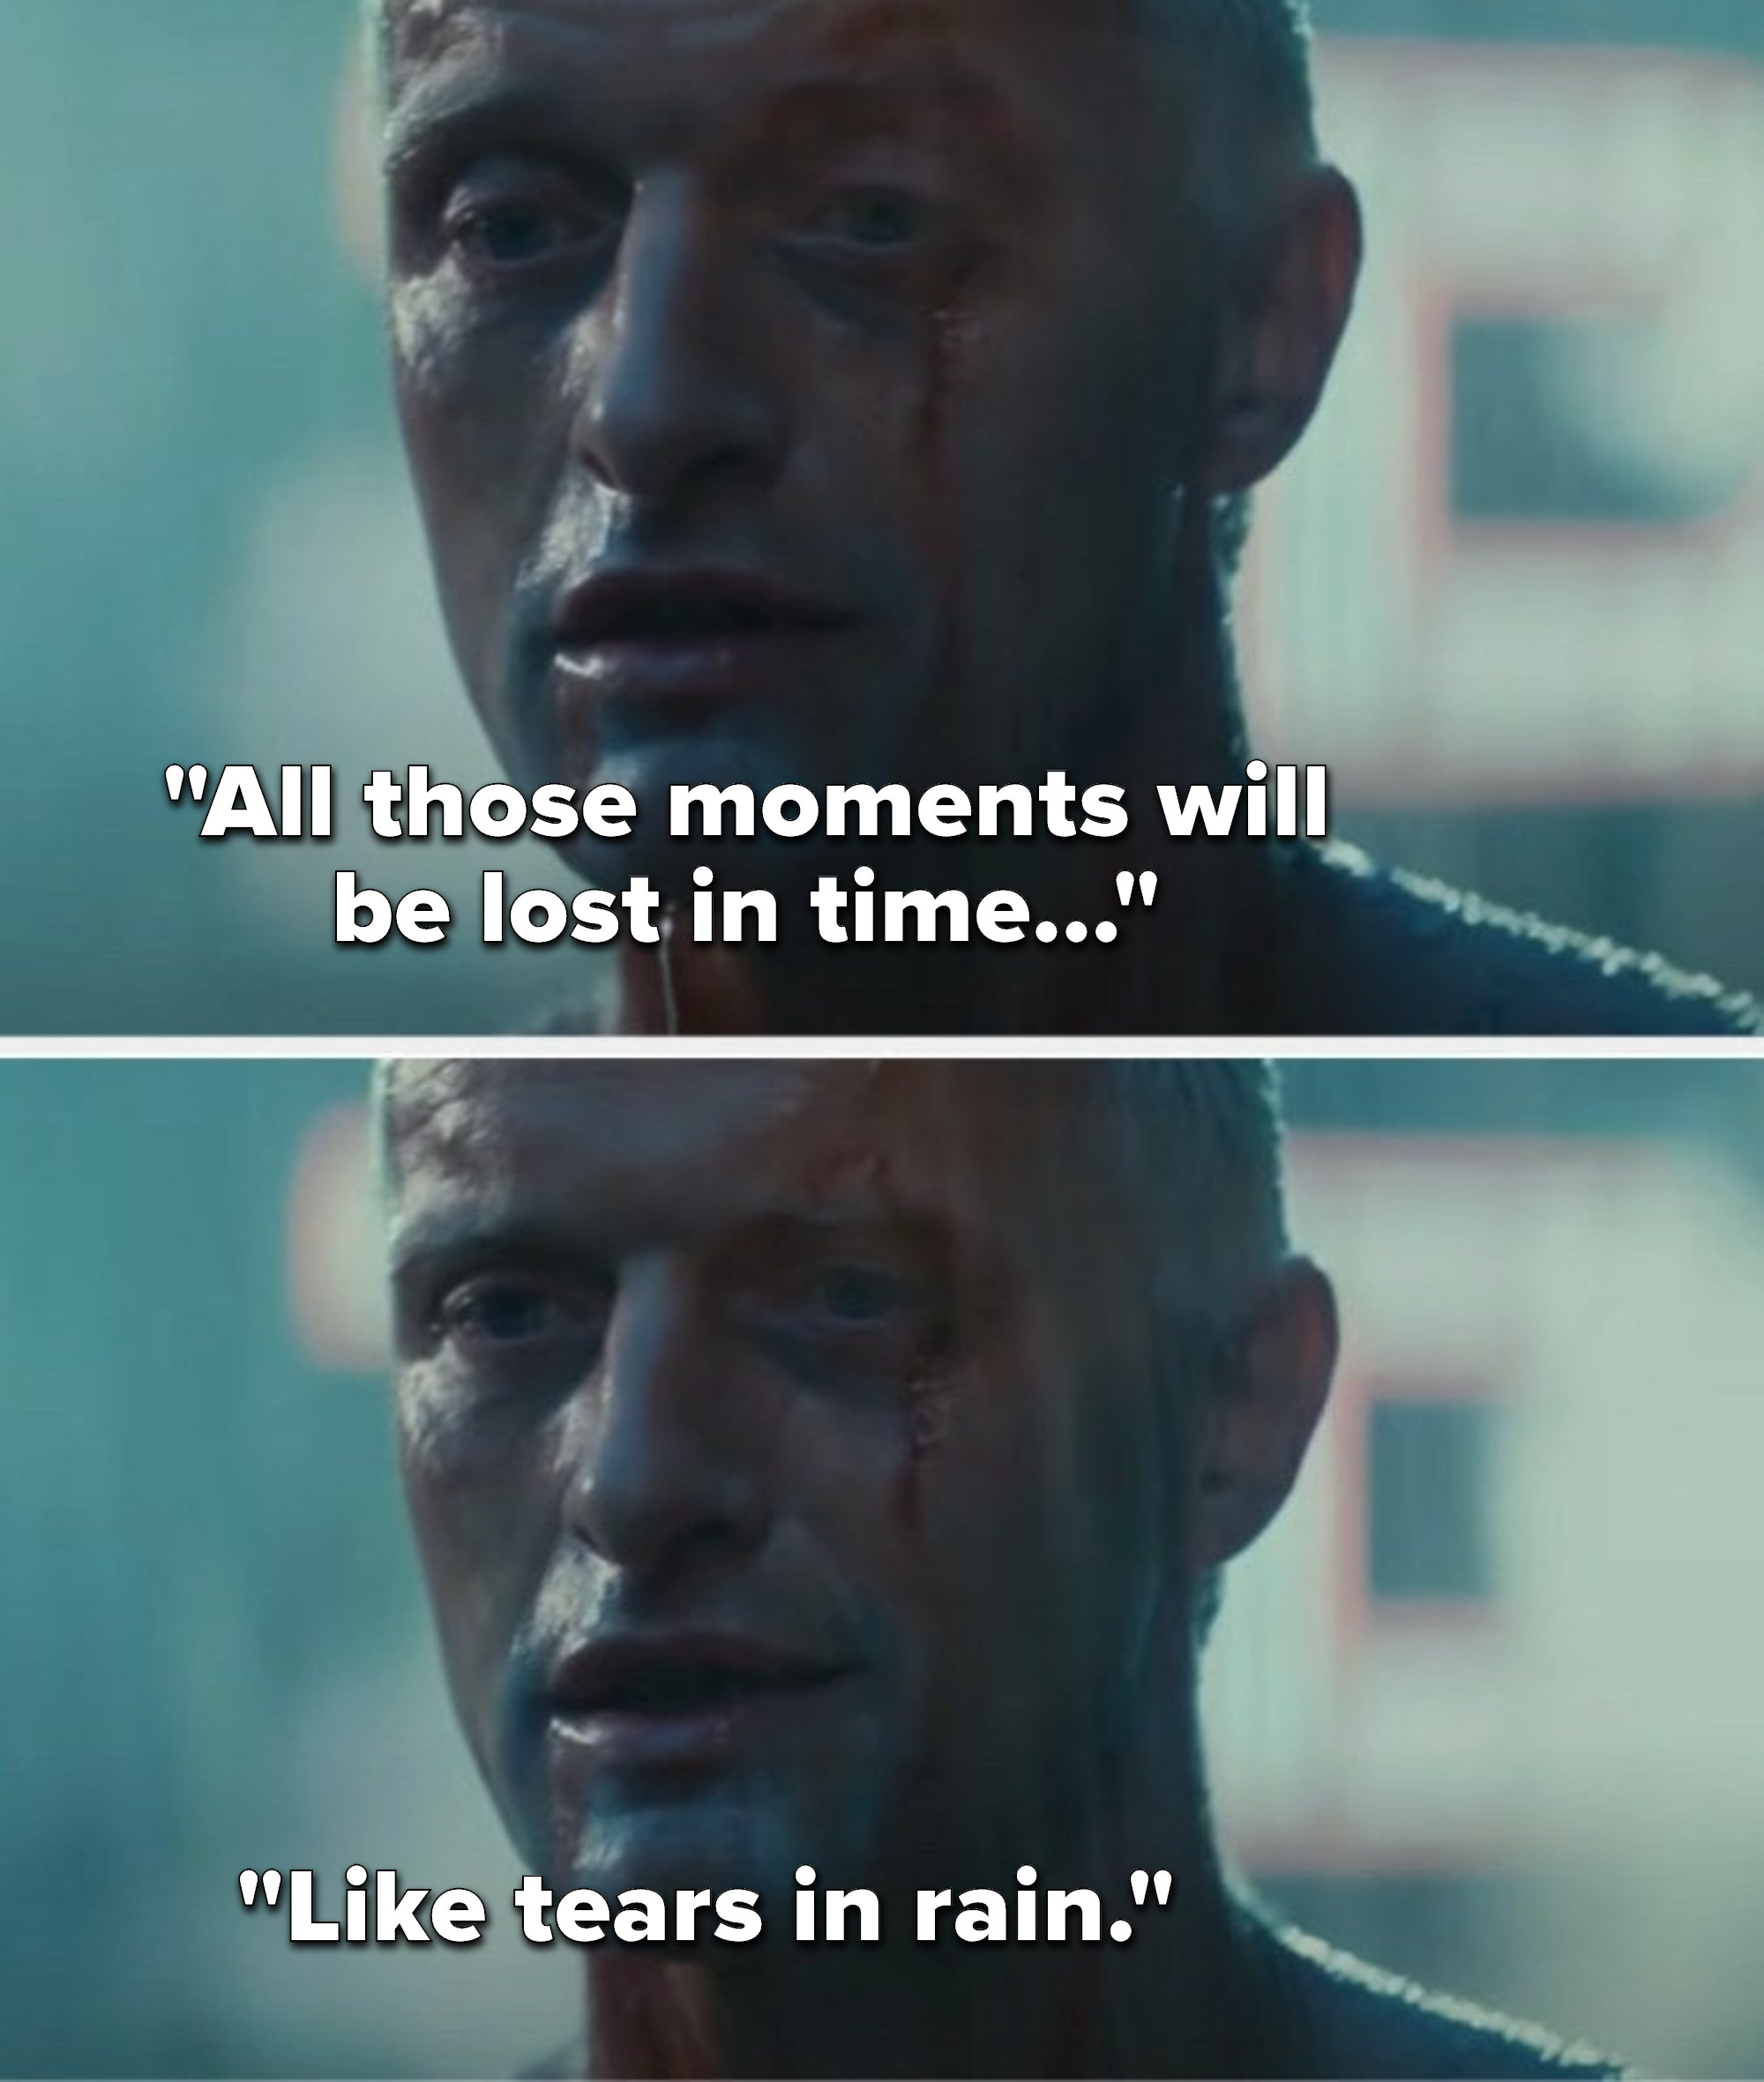 """Roy Batty says, """"All those moments will be lost in time, like tears in rain"""""""